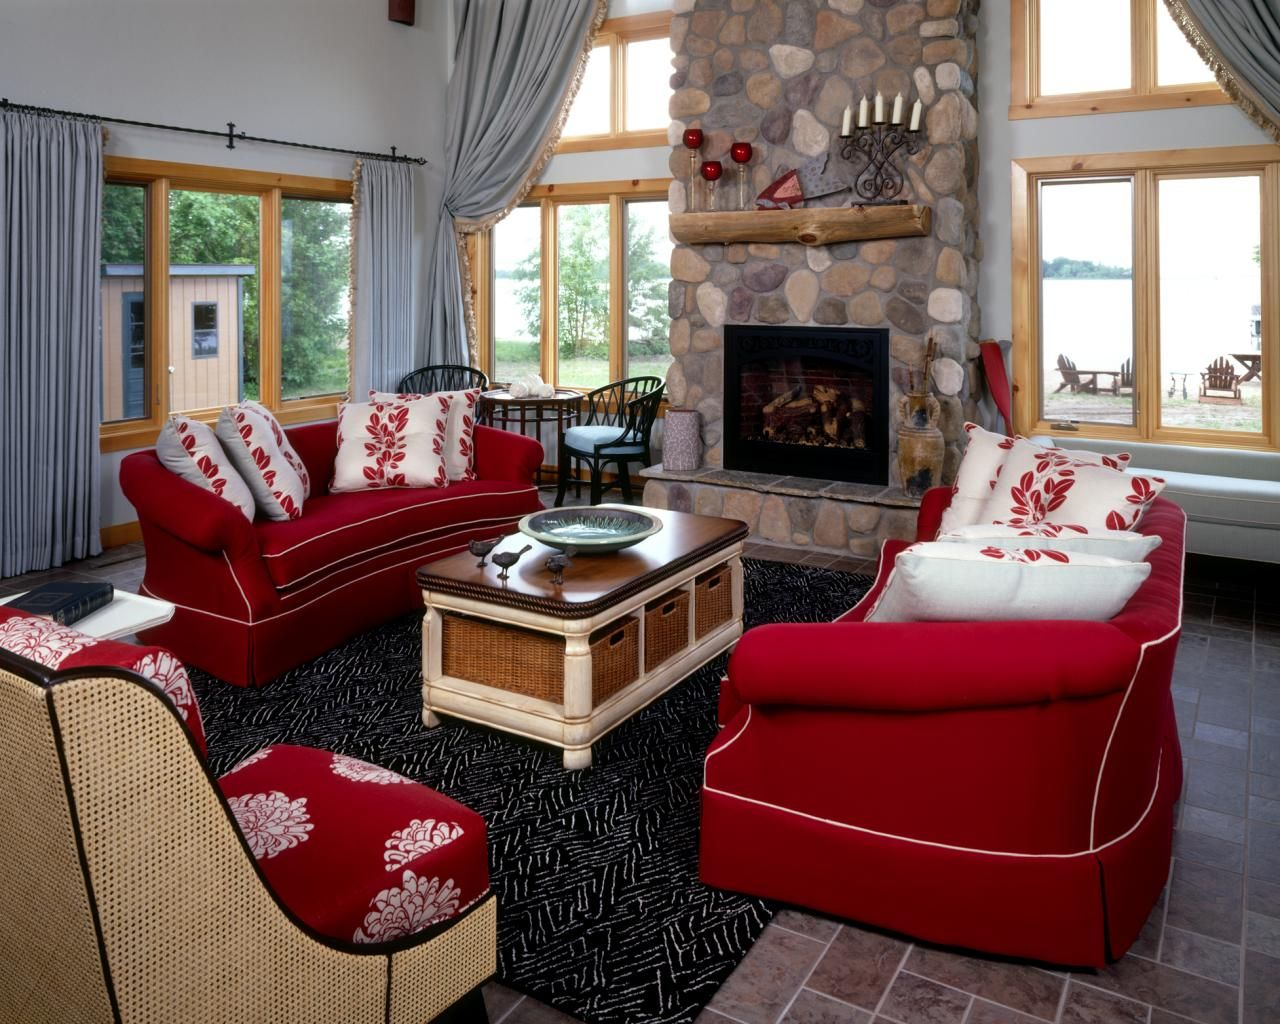 Room 5 Ways to Decorate With Red